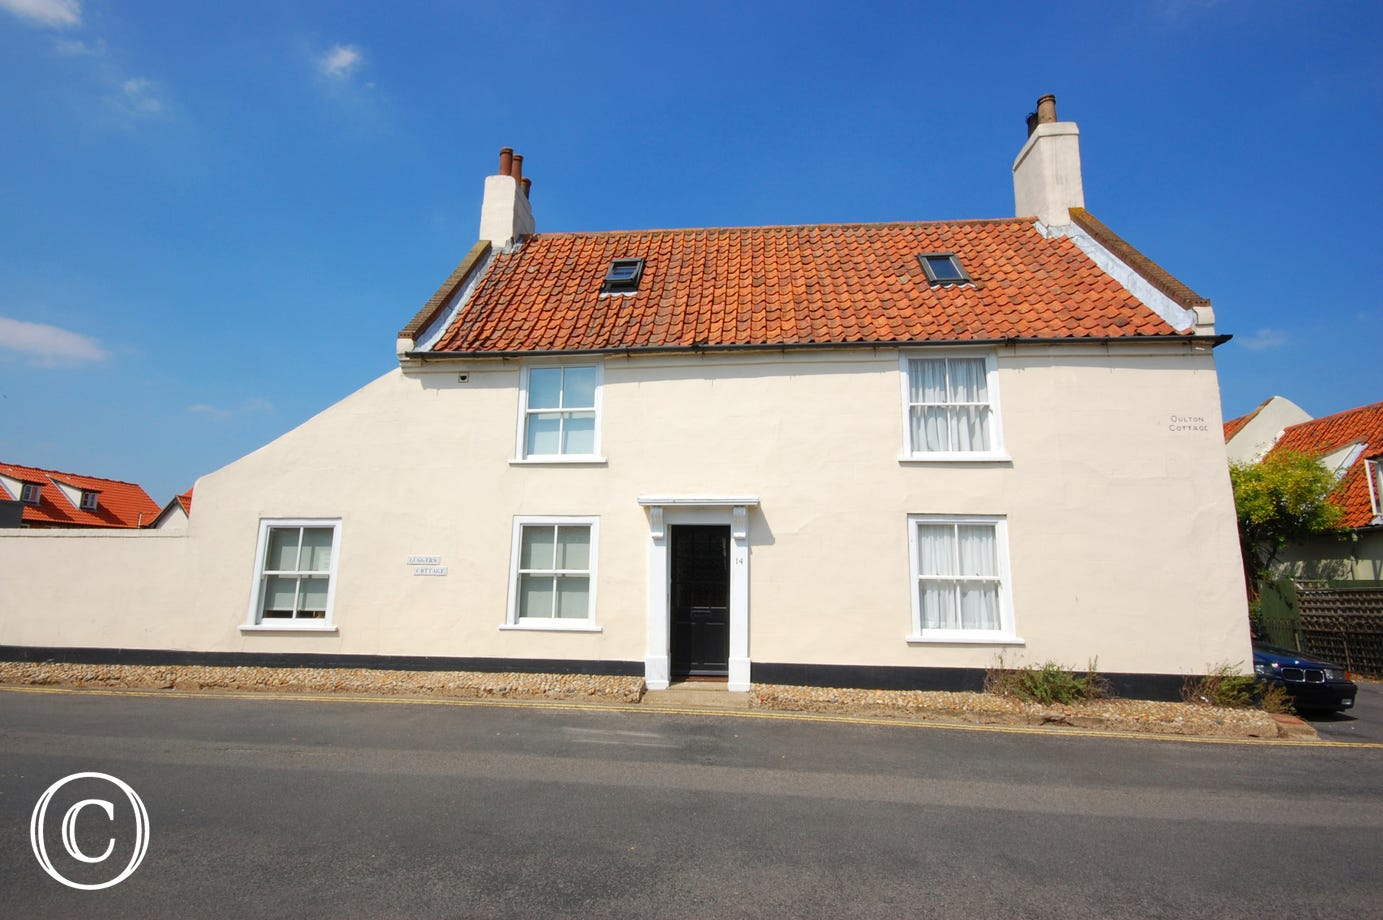 Luggers Cottage is a period property dating from 1790, and is only a few minutes walk from Wells Quay.